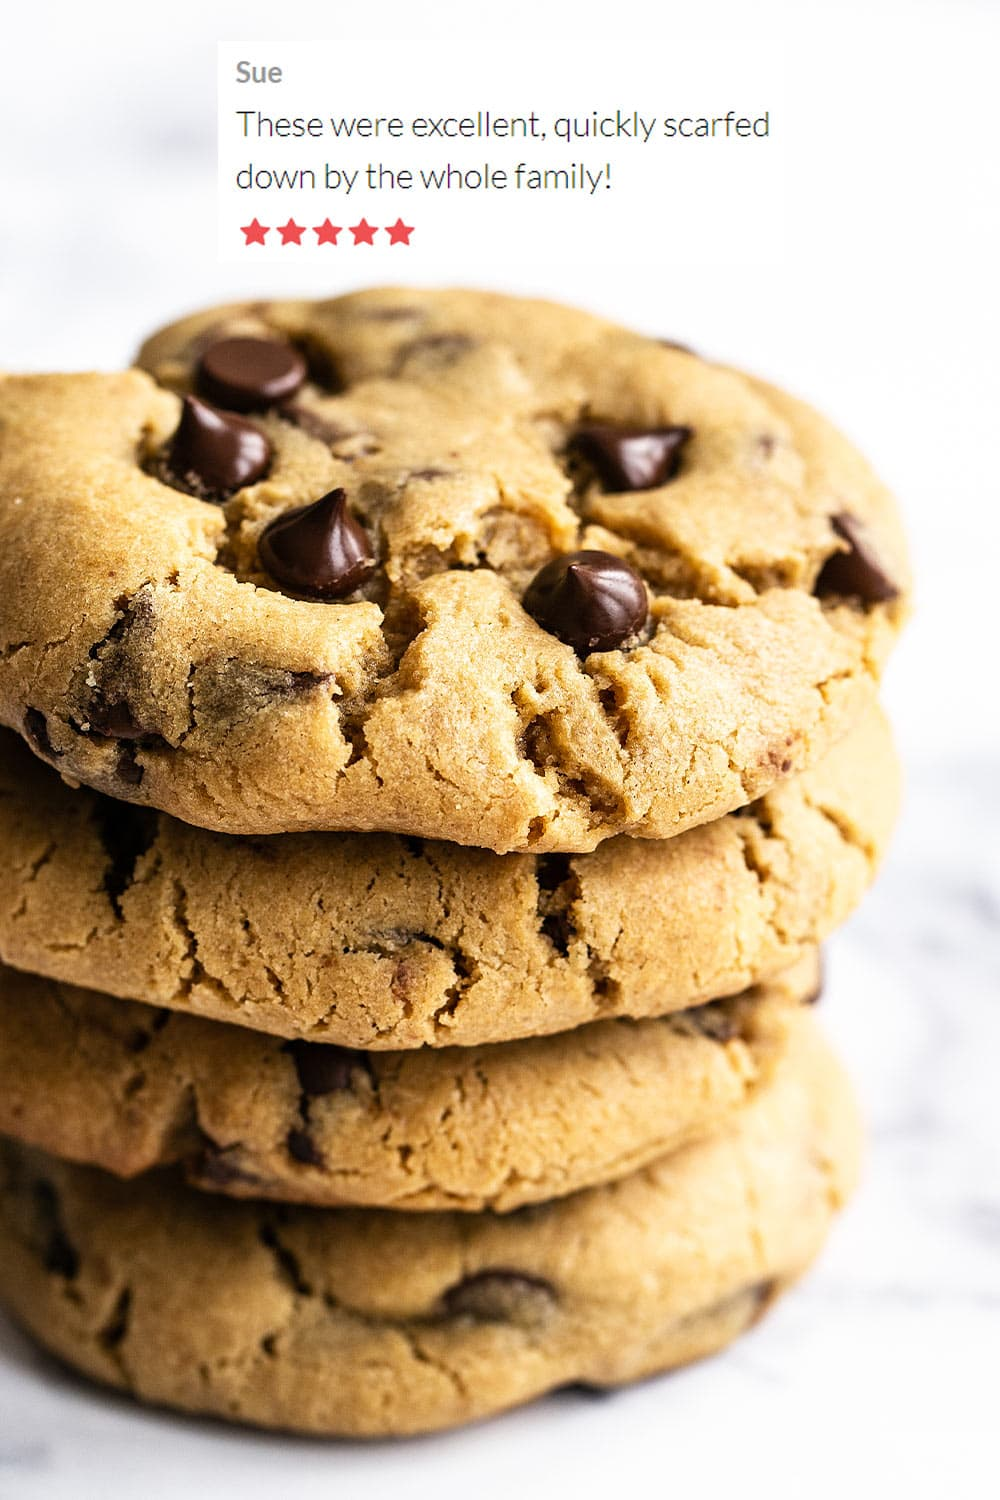 homemade peanut butter chocolate chip cookies stacked